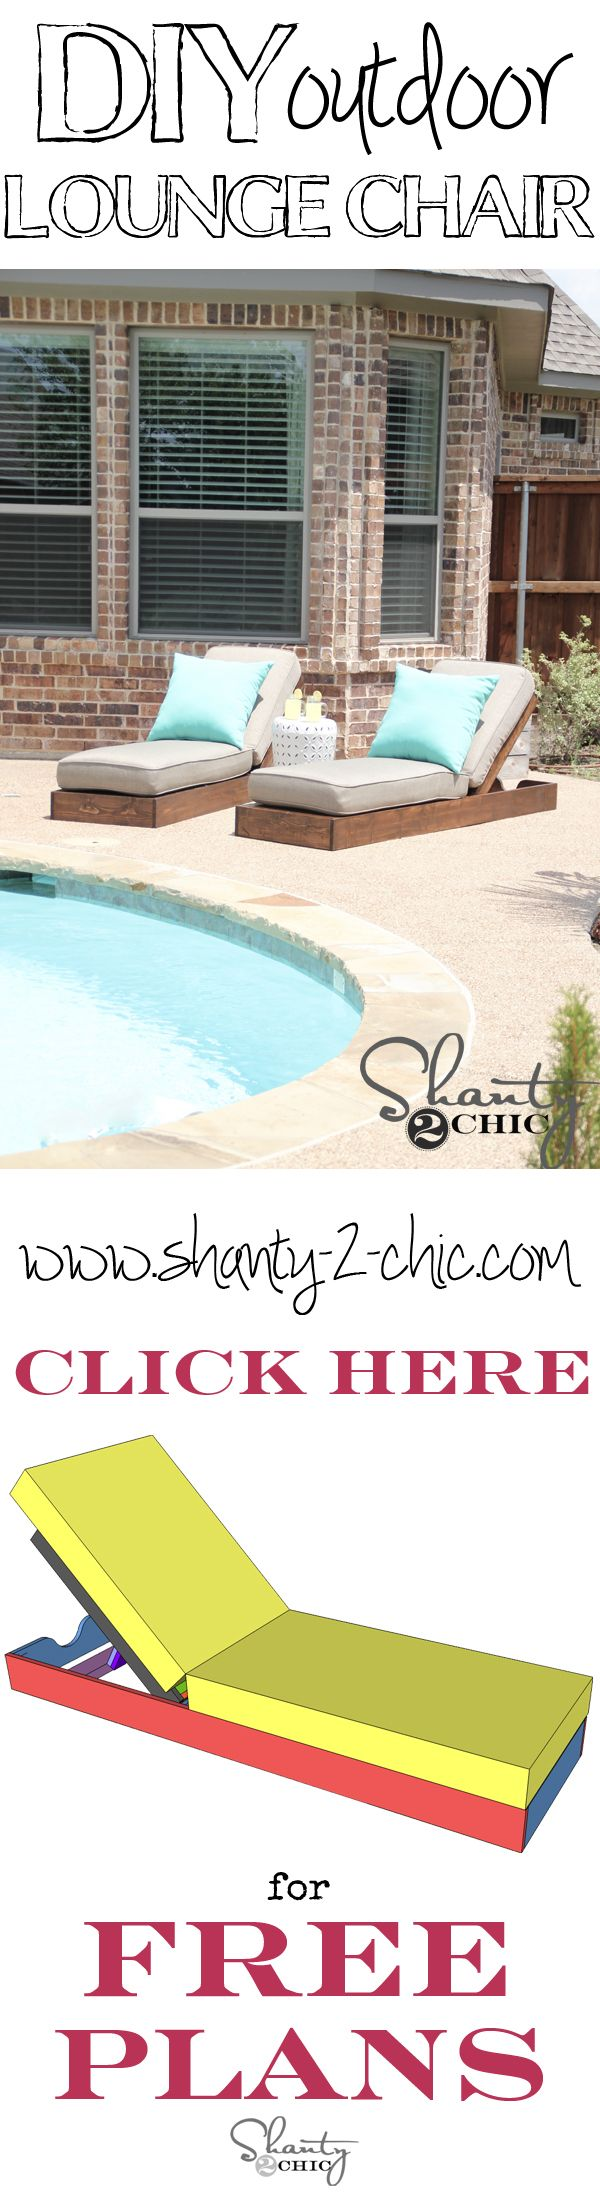 Build your own pool table plans - Build Your Own Custom Outdoor Lounge Chairs With Free Plans From Shanty 2 Chic